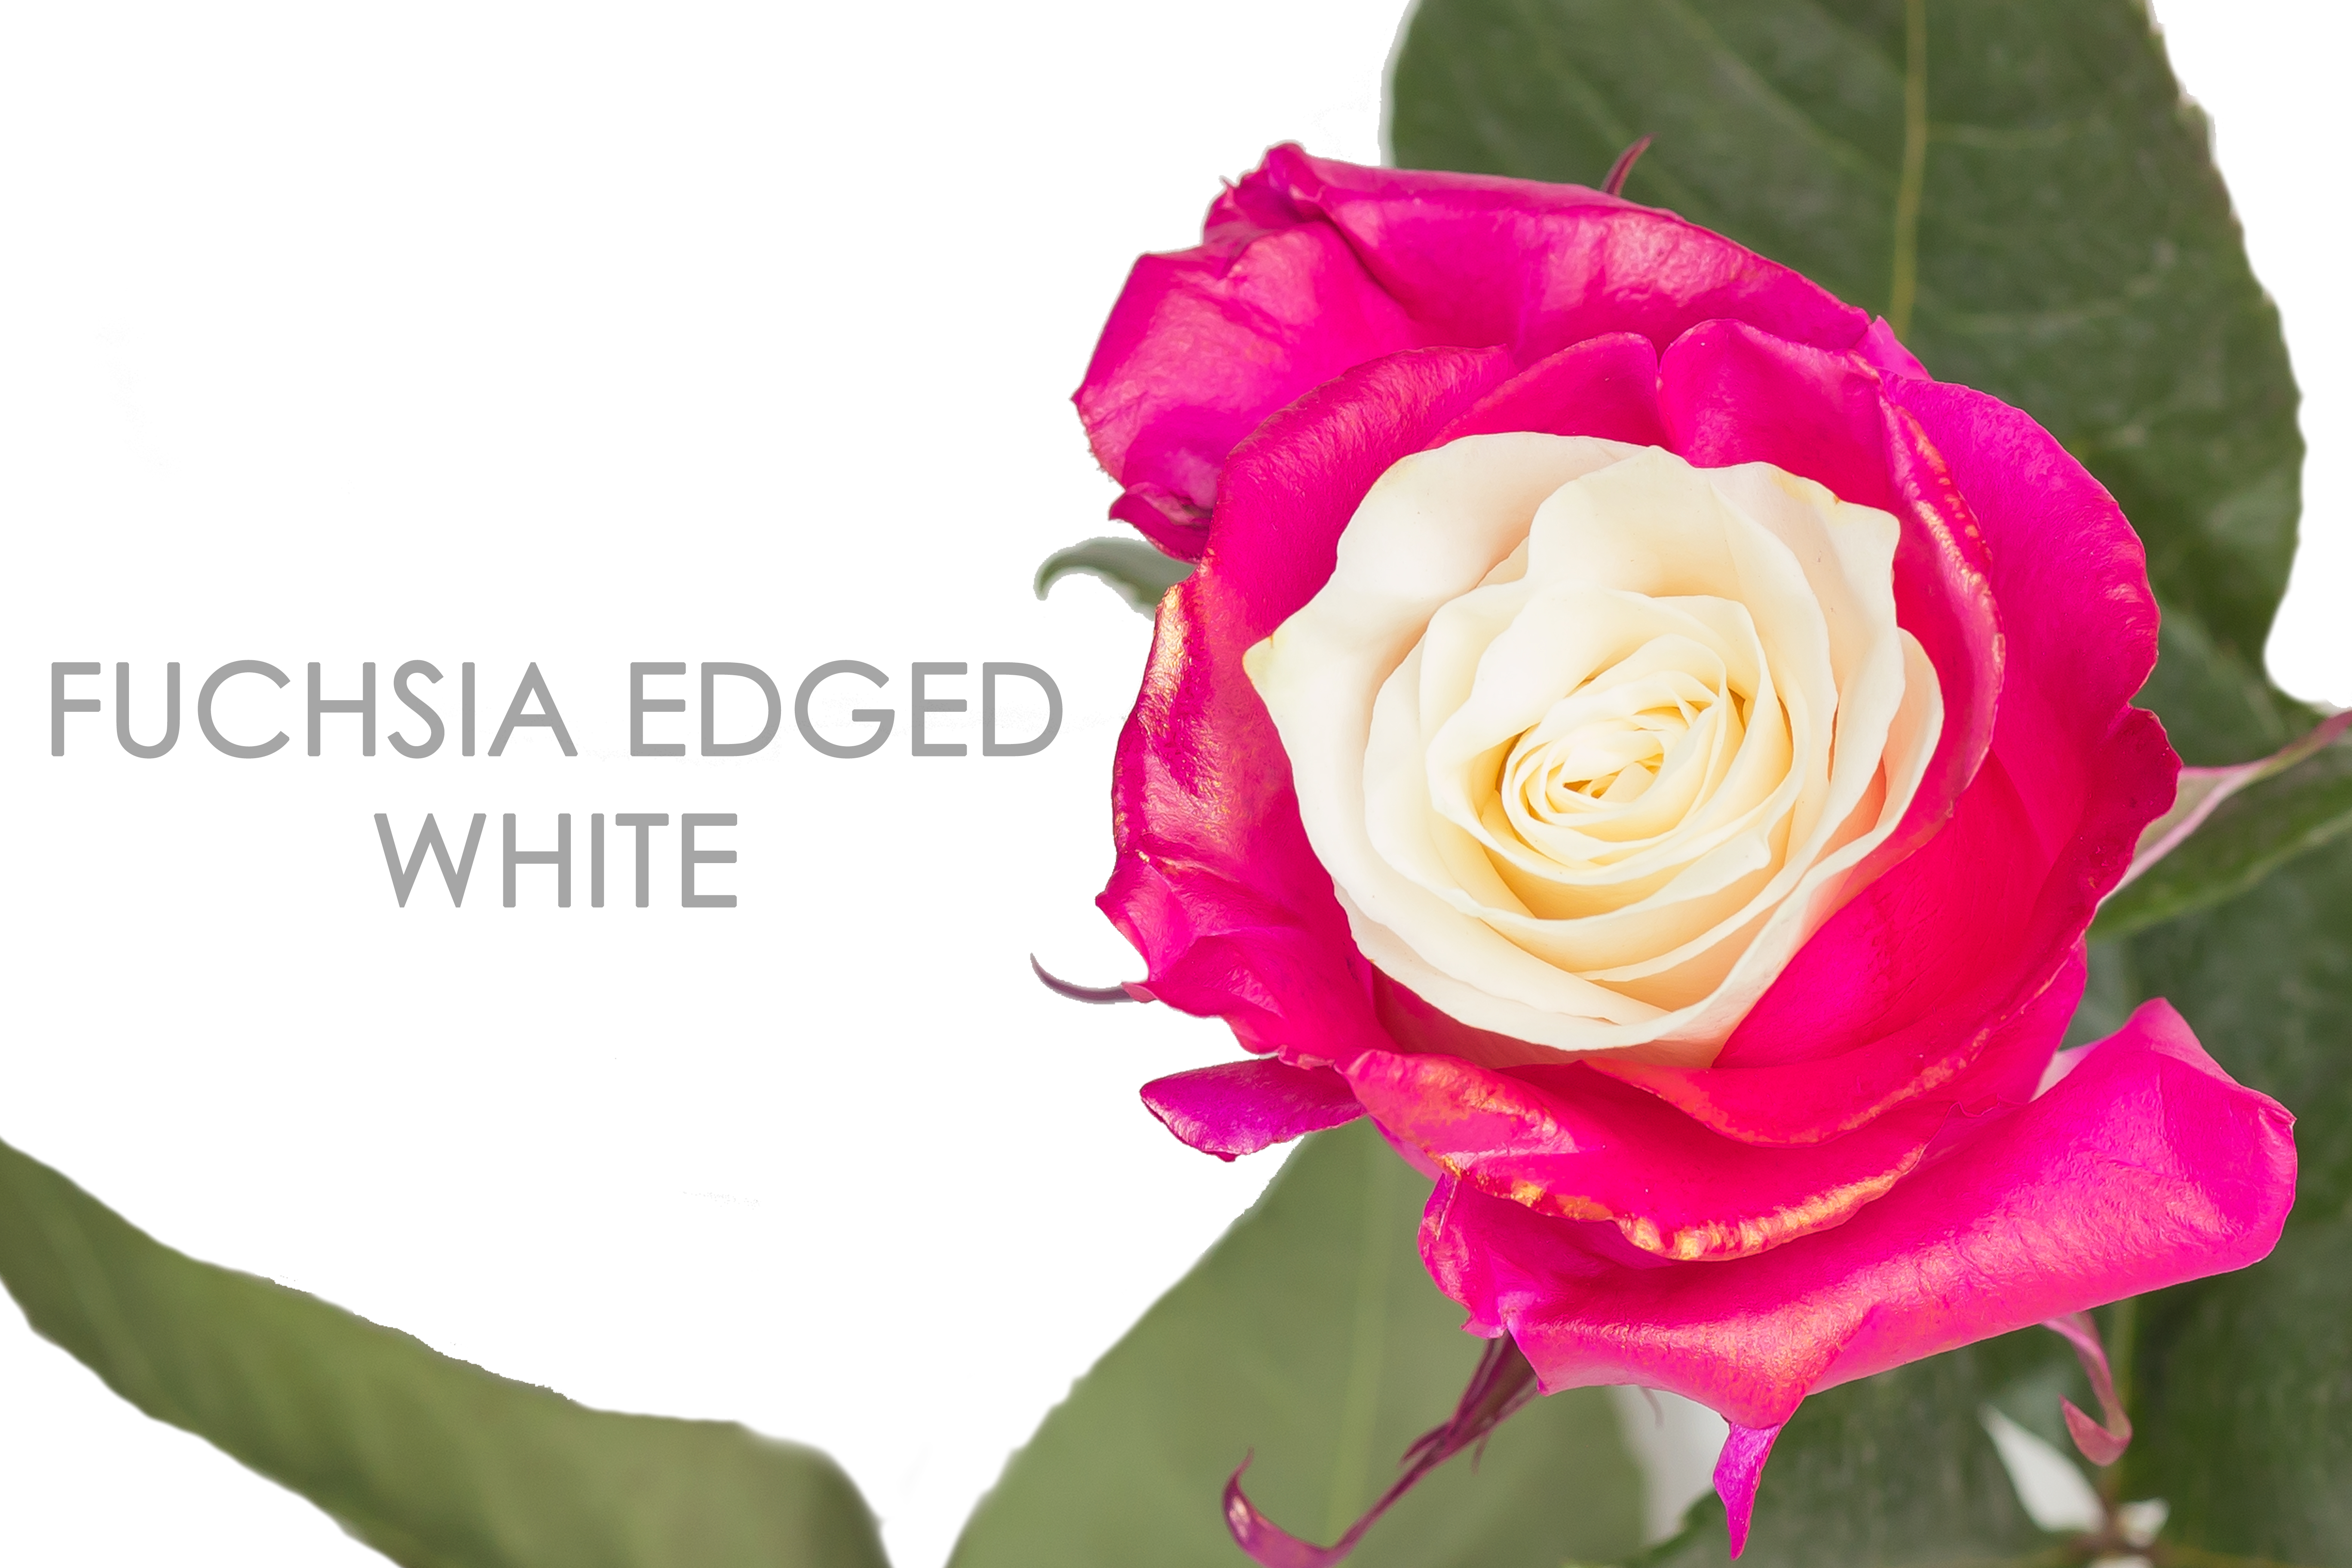 FUCHSIA-EDGED-WHITE-CAPTION-UNIDAD